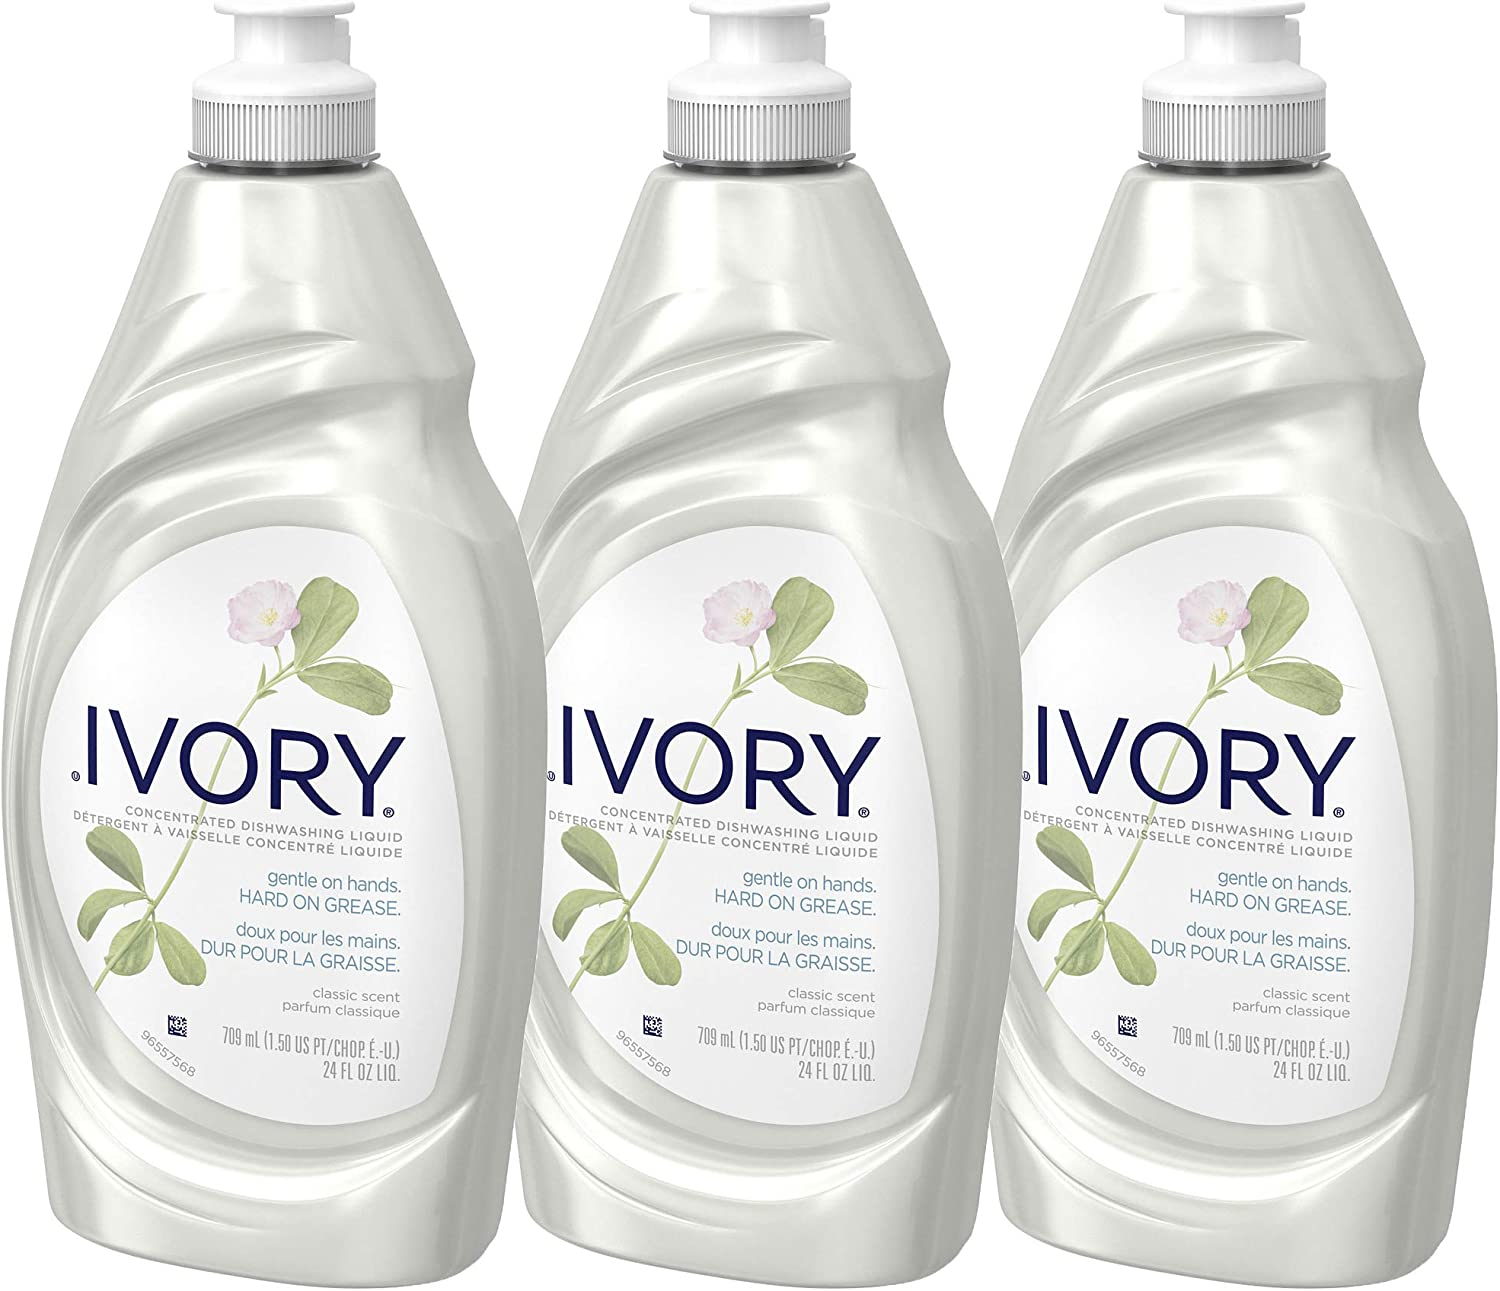 Ivory Dishwashing Liquid Dish Soap, Pack of 3 - Gentle On Hands - Classic Scent - 3 x 24. Fl.Oz